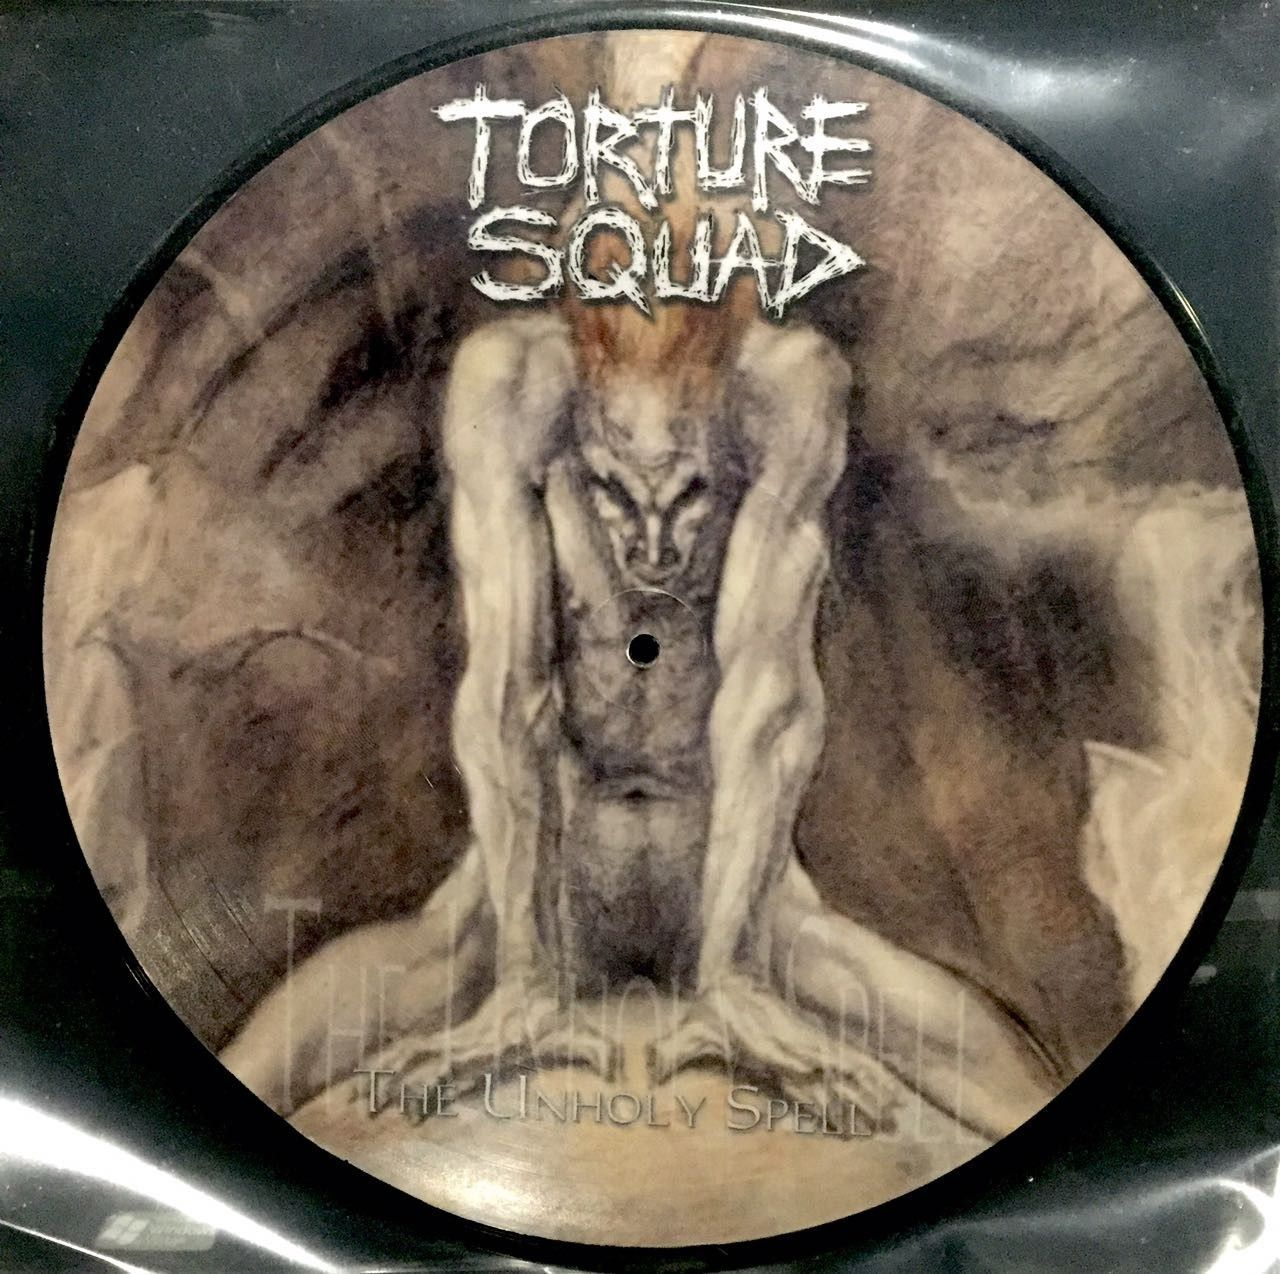 LP – Torture Squad ‎– The Unholy Spell ( LP Picture Importado )